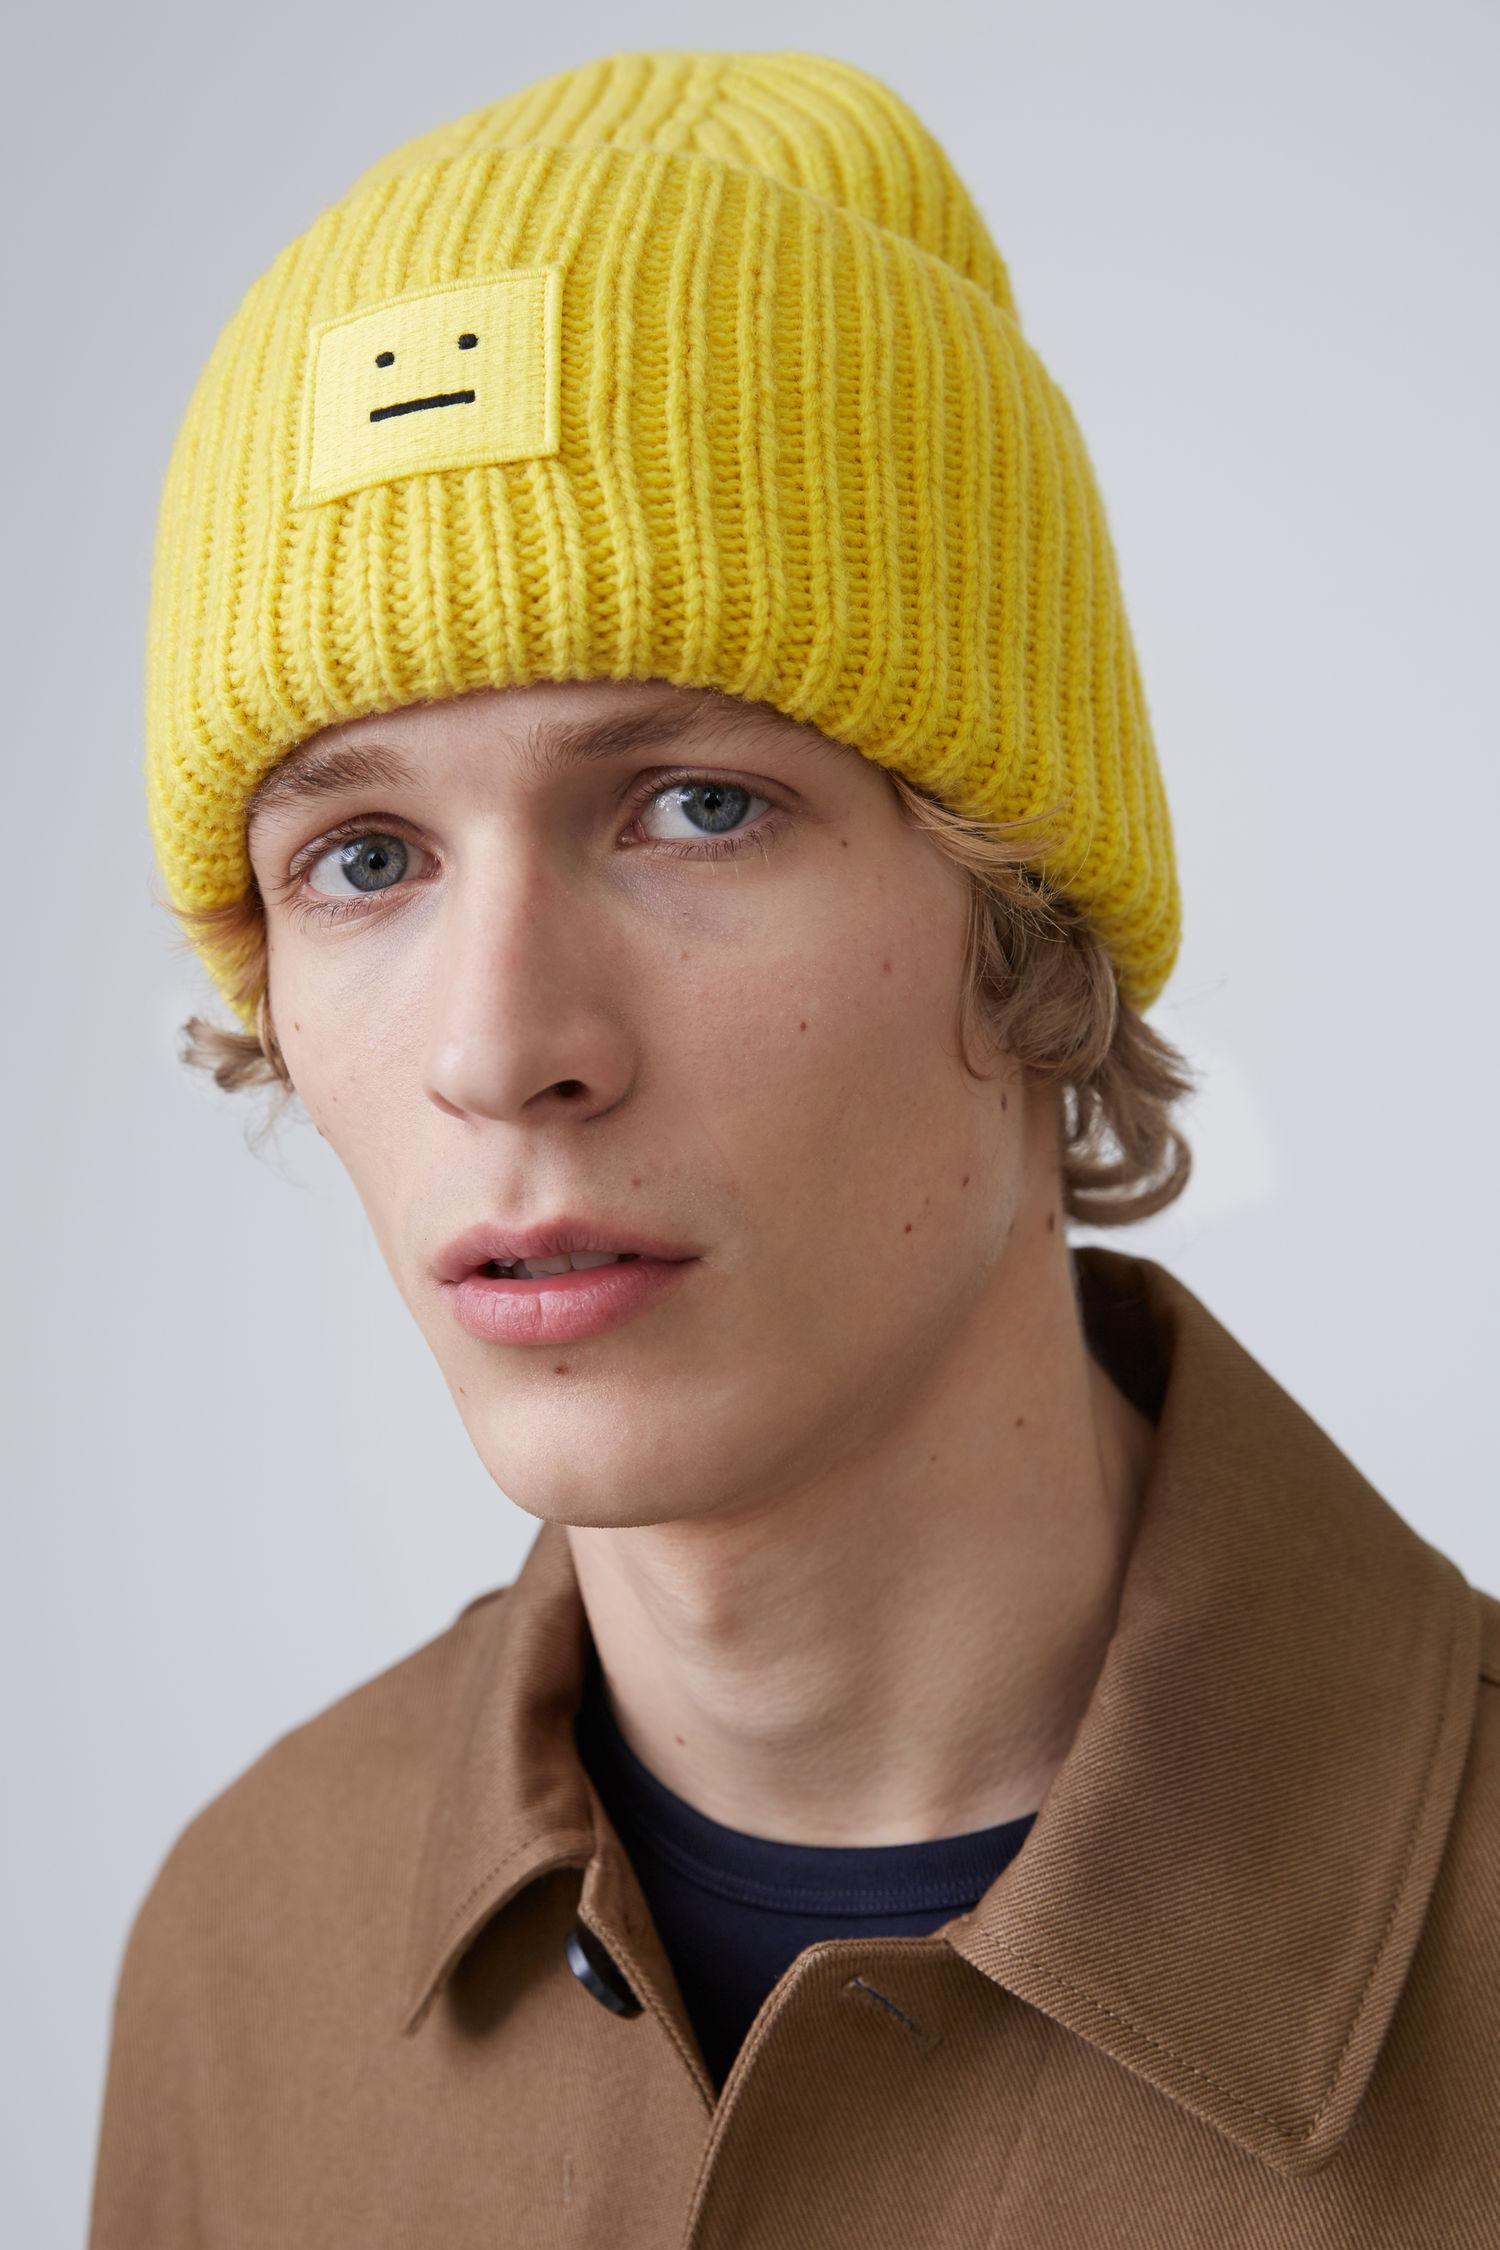 Lyst - Acne Studios Ribbed Beanie Hat canary Yellow in Yellow 8709589daad